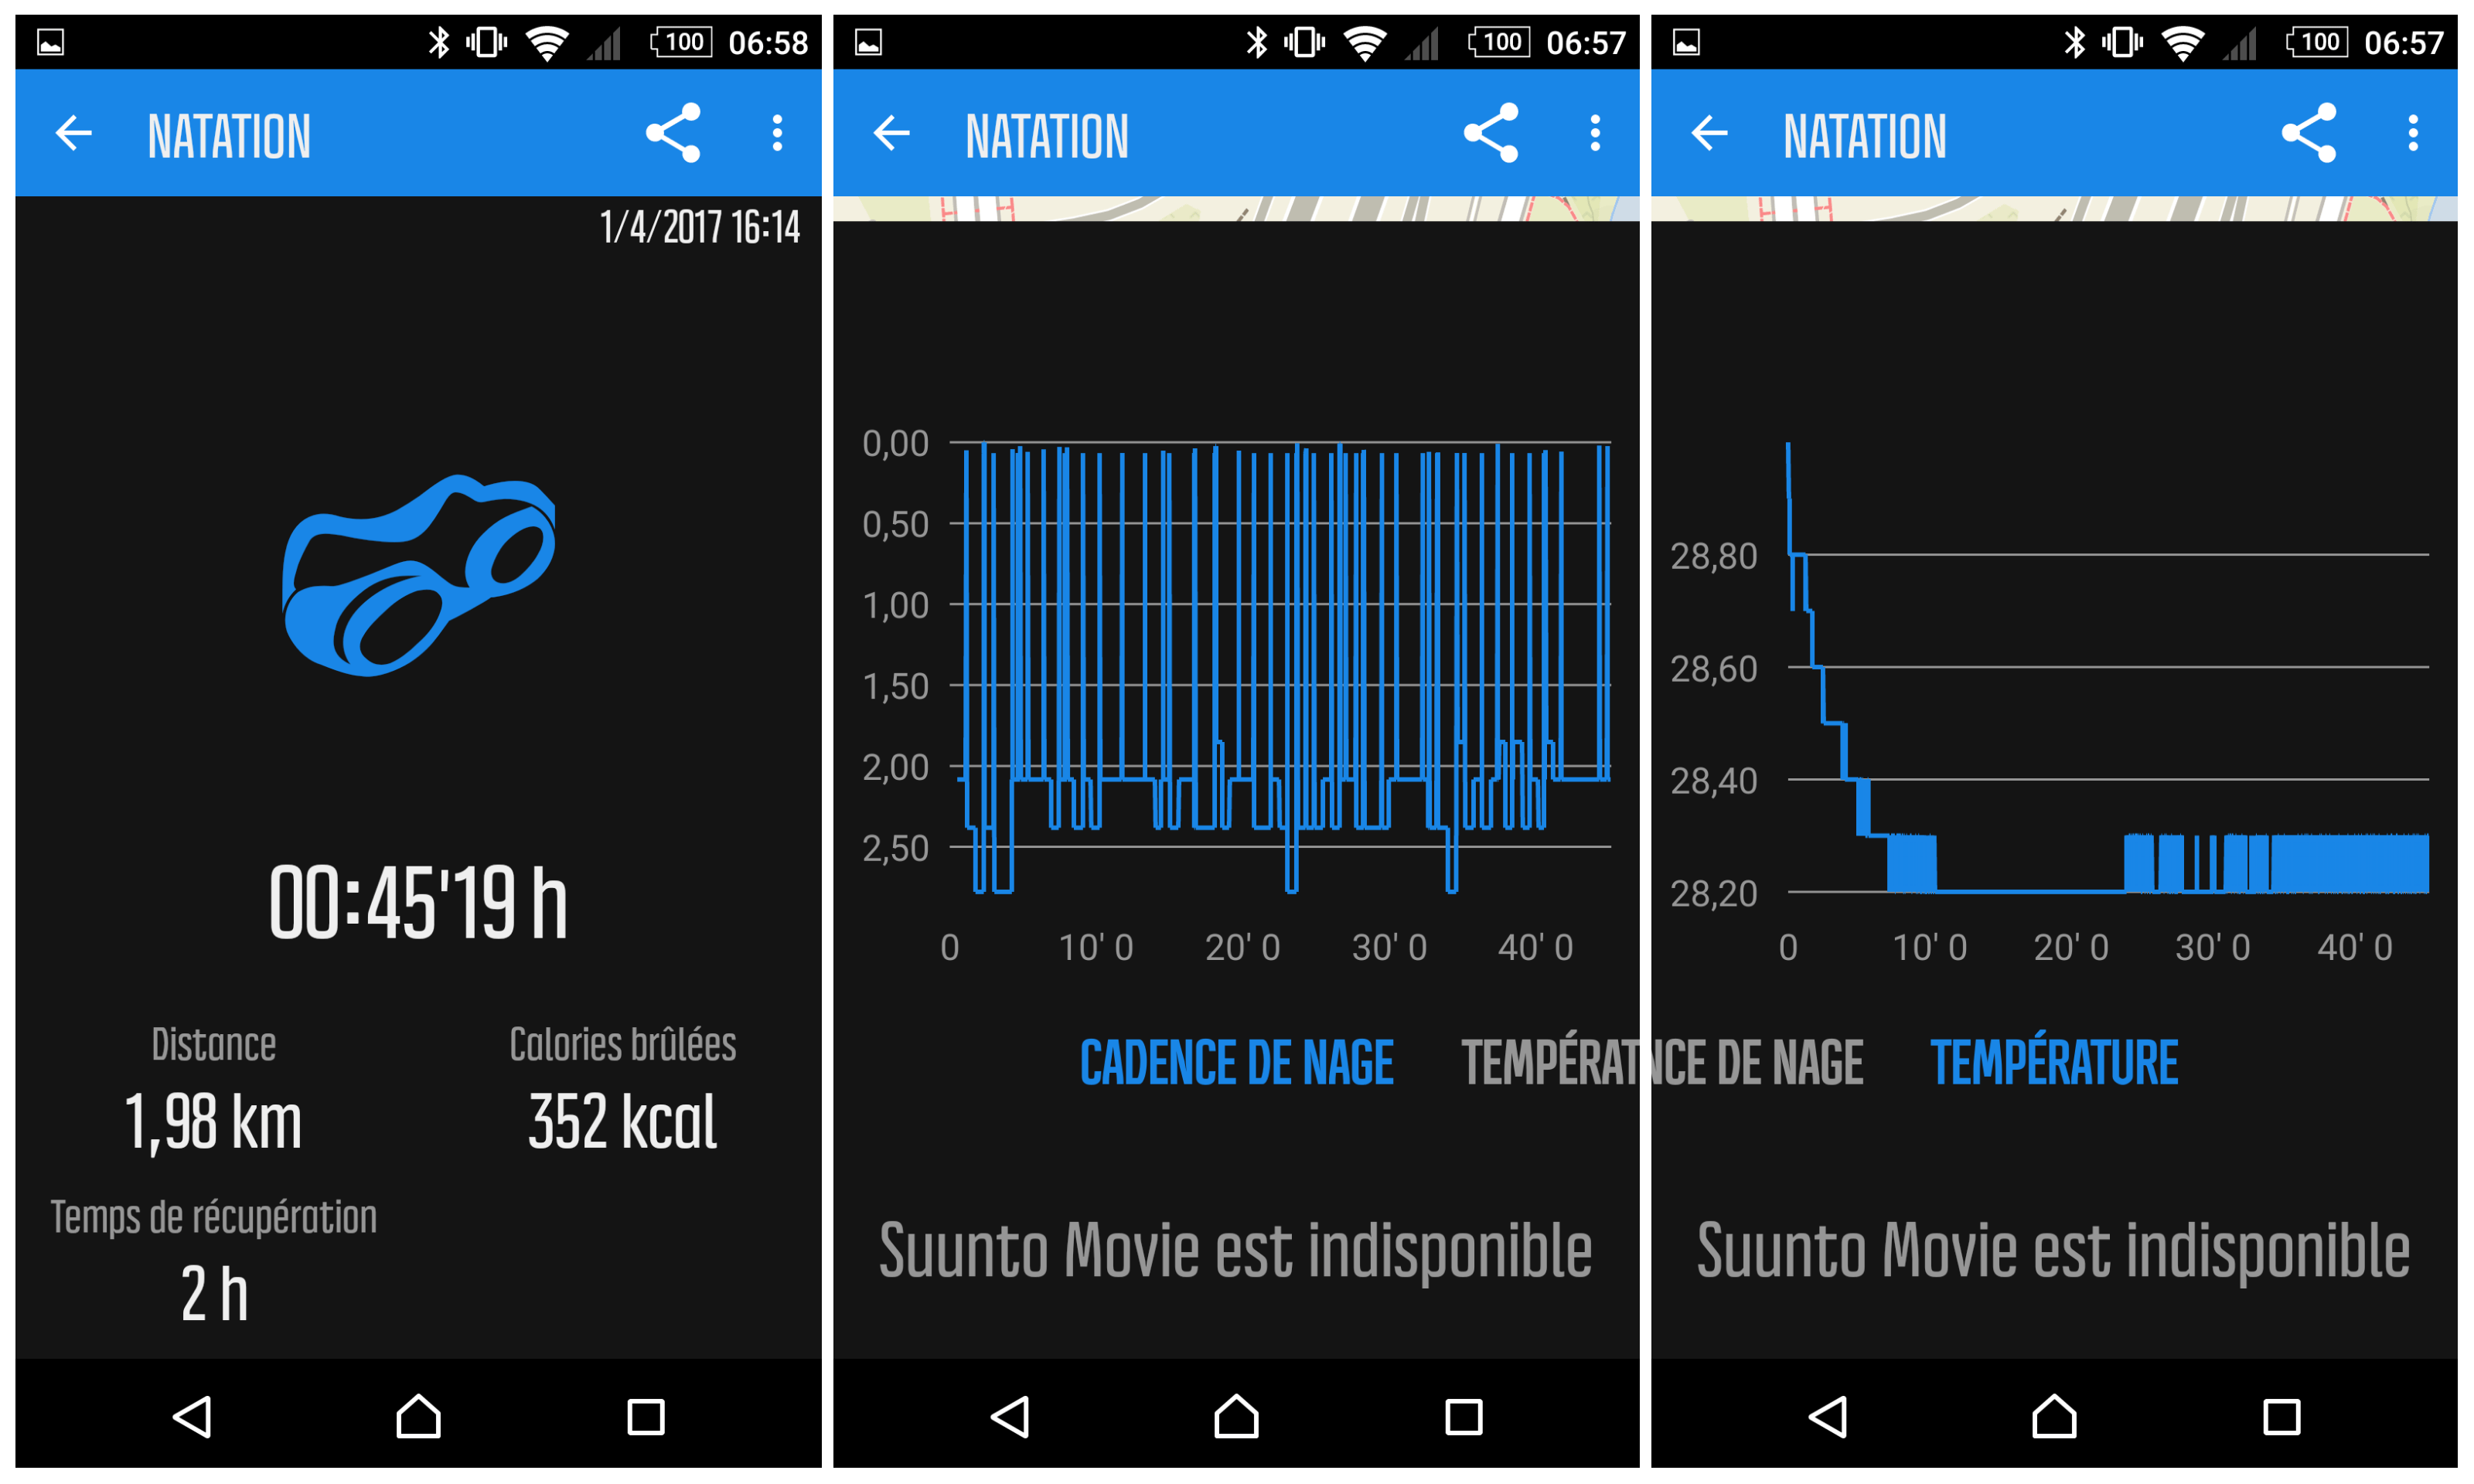 capture d'écran application movescount smartphone suunto spartan mode natation